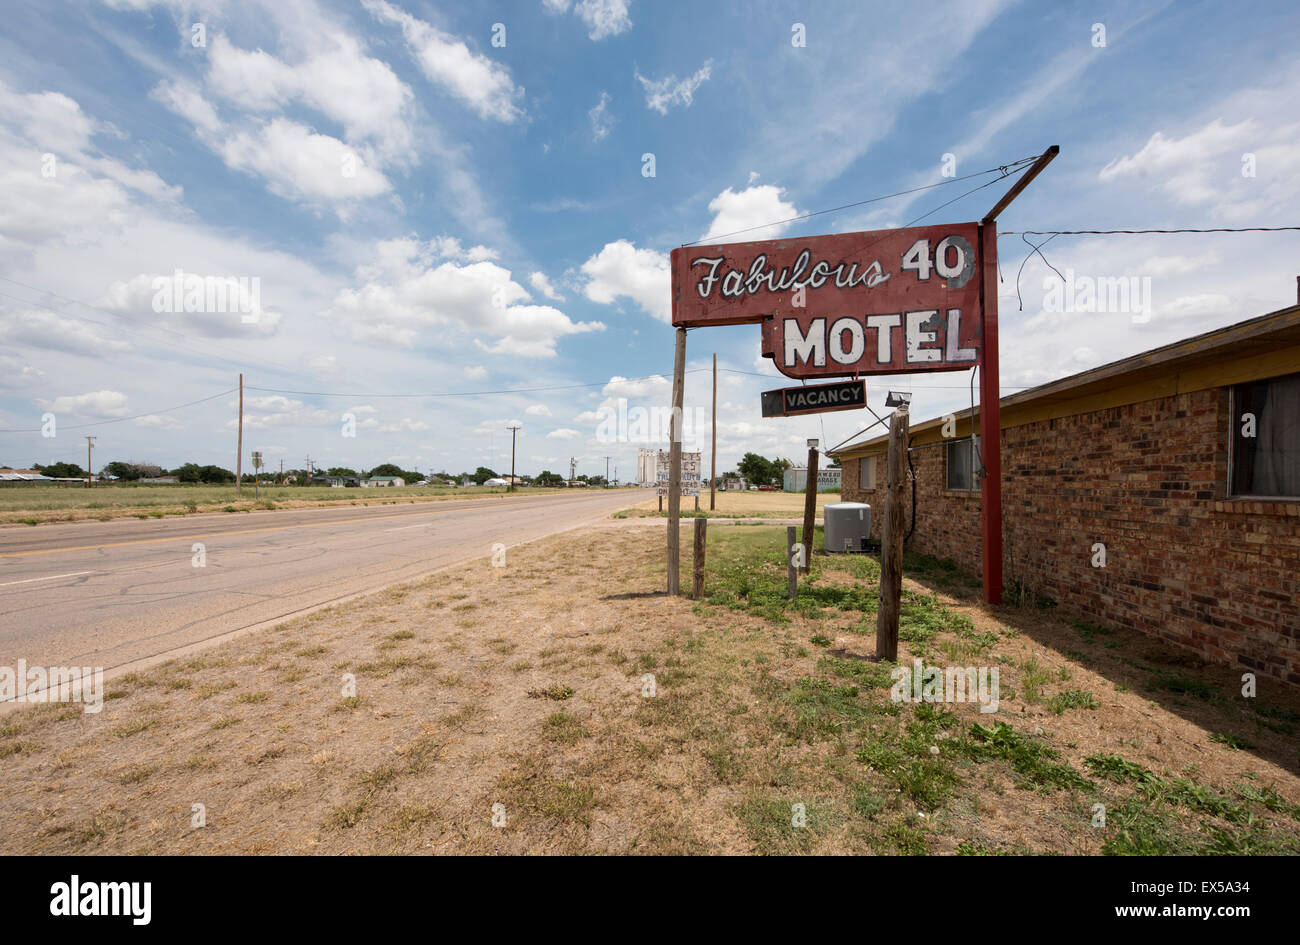 Fabulous 40 Shuttered Motel on Route 66 in Adrian, Texas - Stock Image